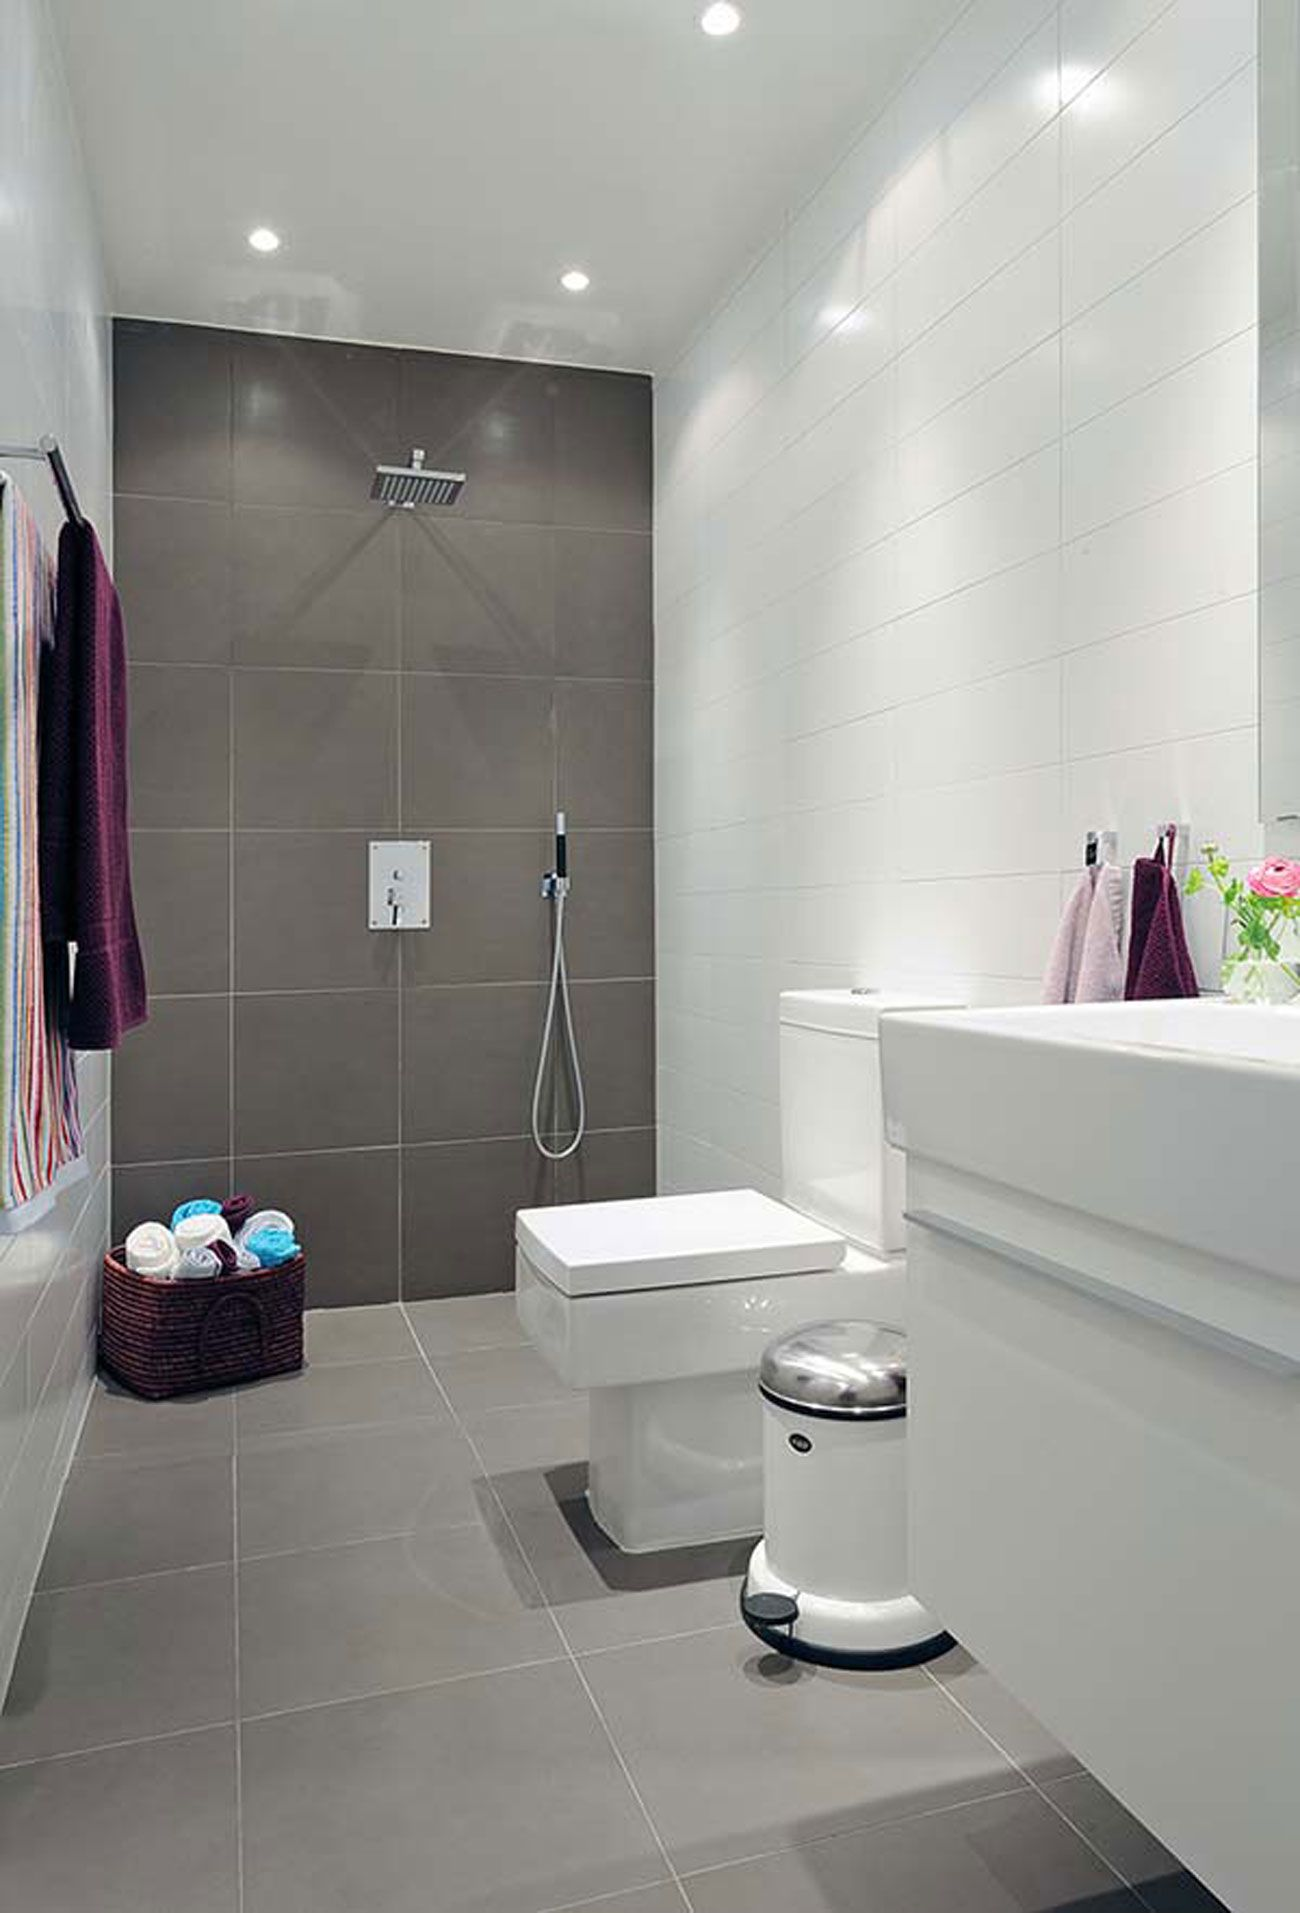 7 Small Bathroom Design Tips To Make It Feels Better Bathroom